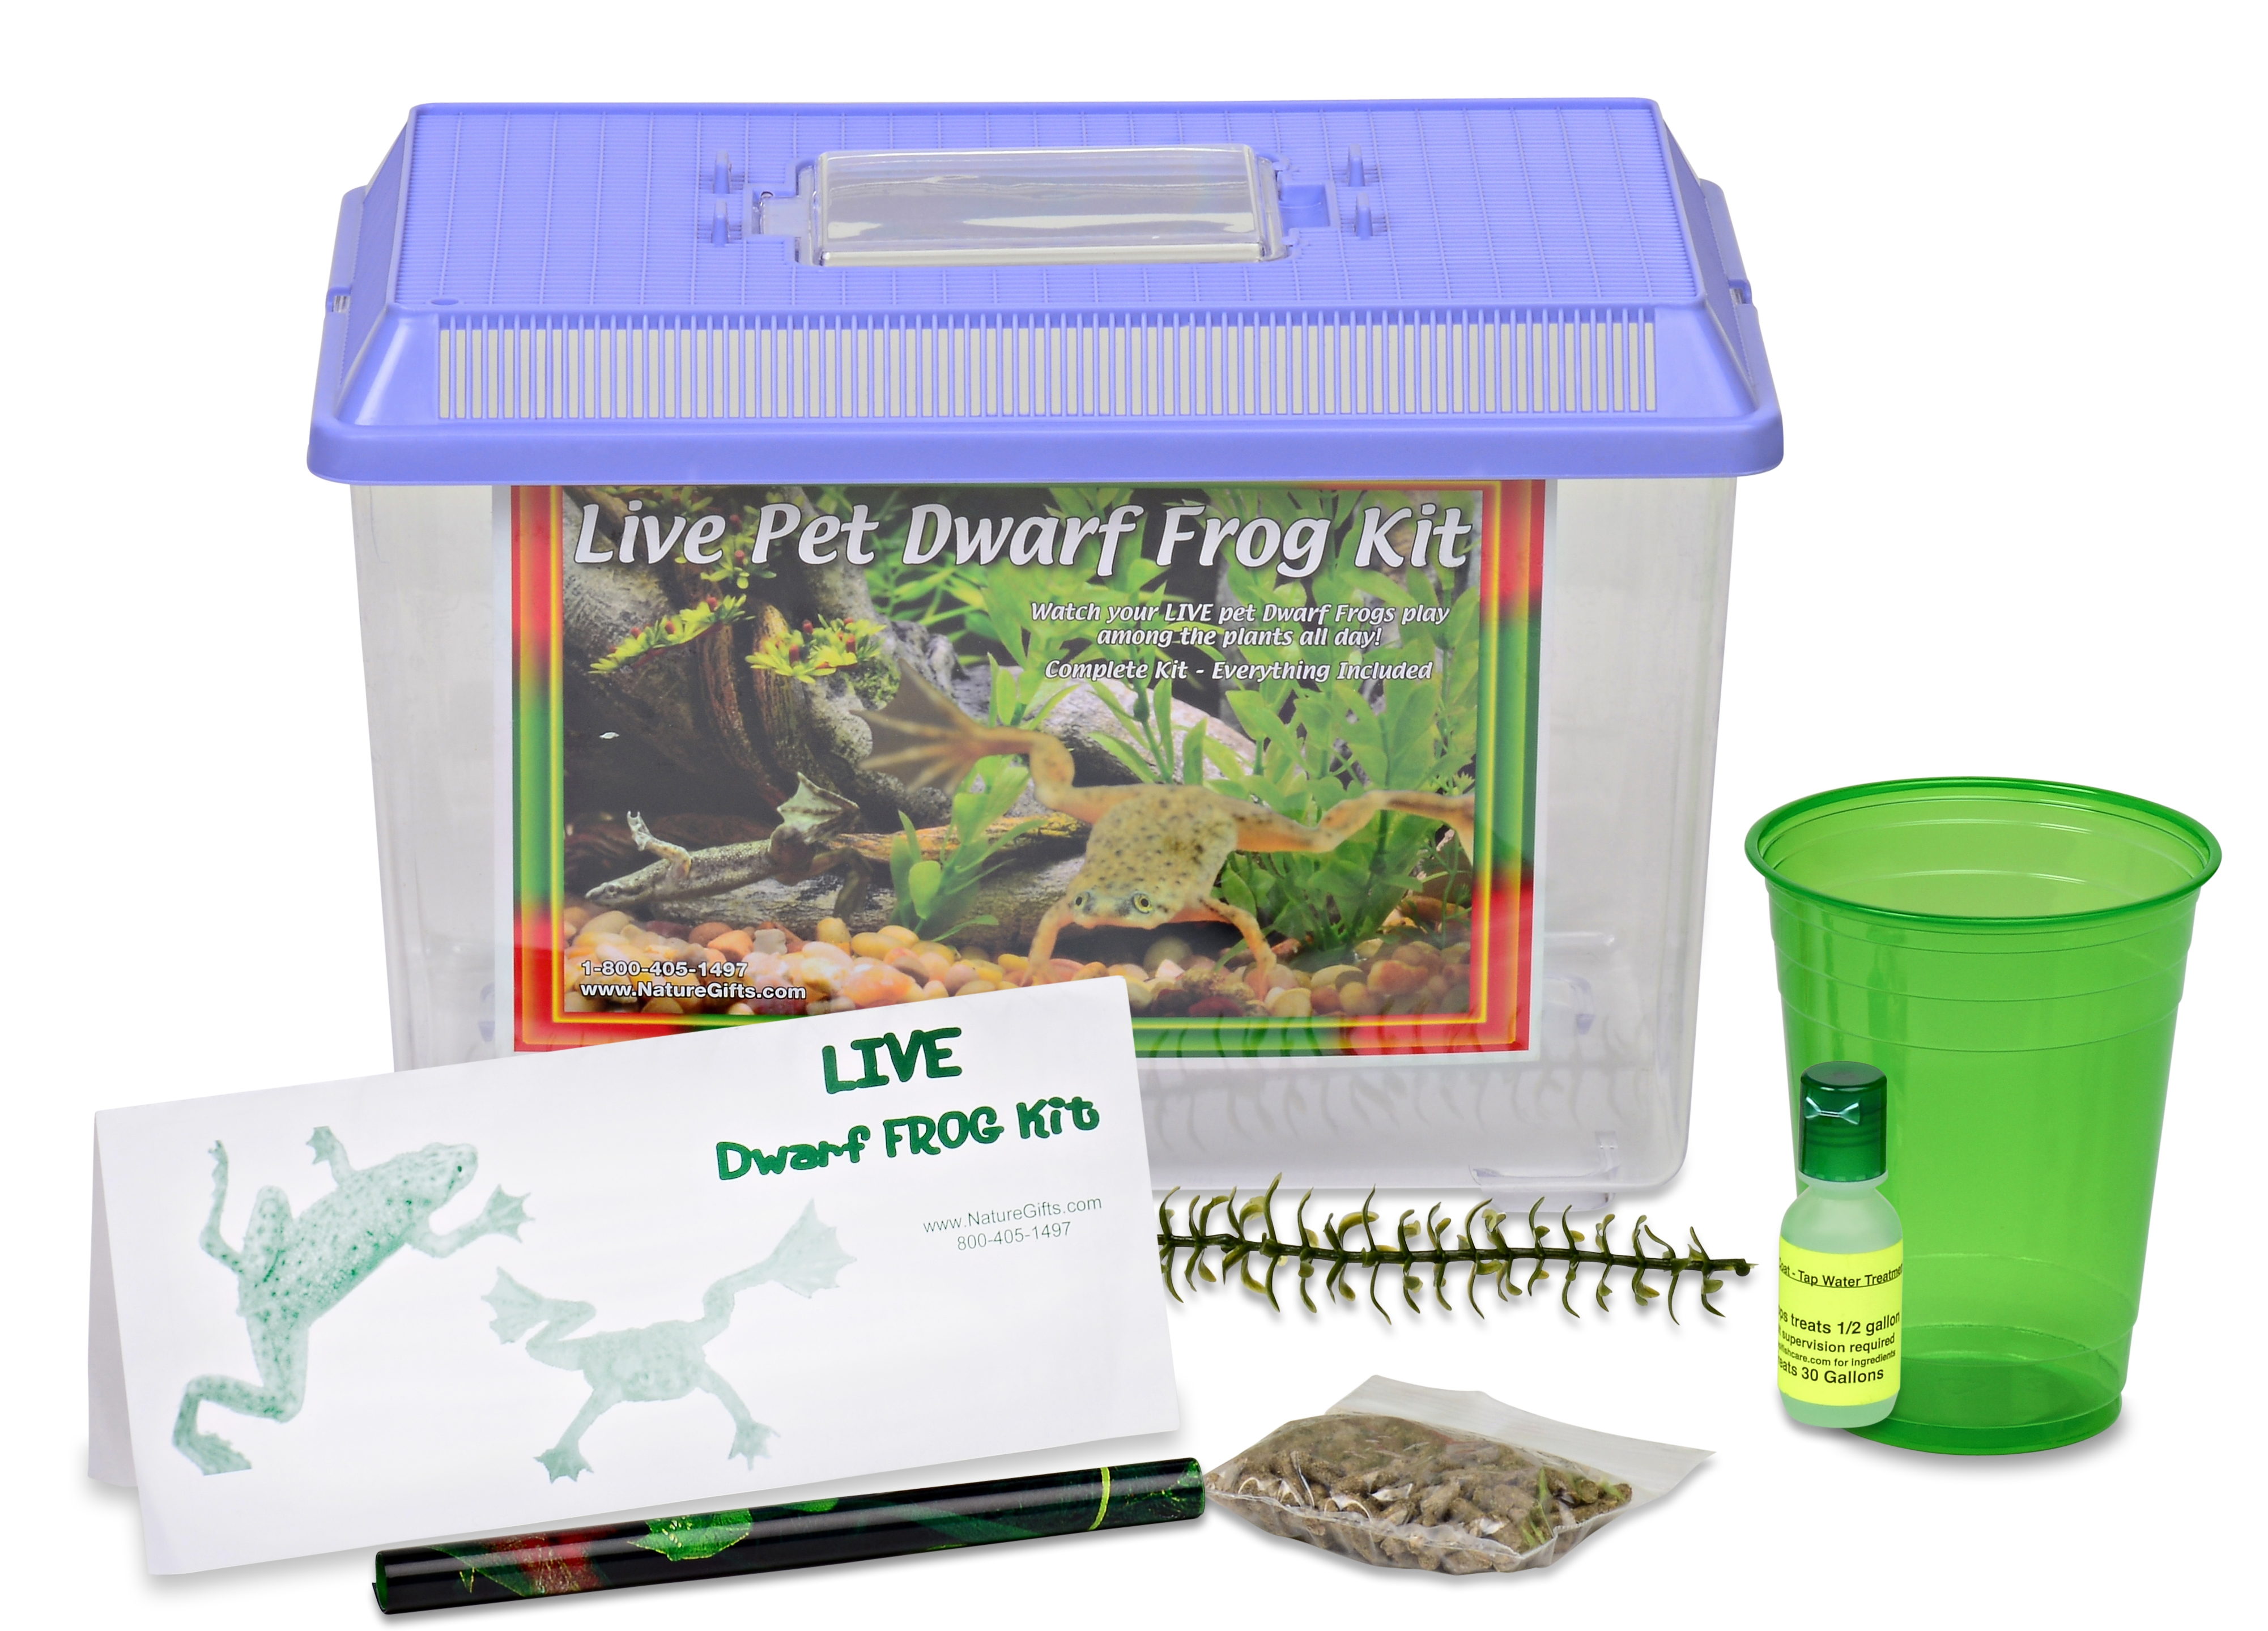 LIVE Pet Aquatic African Dwarf Frogs: Complete Kit